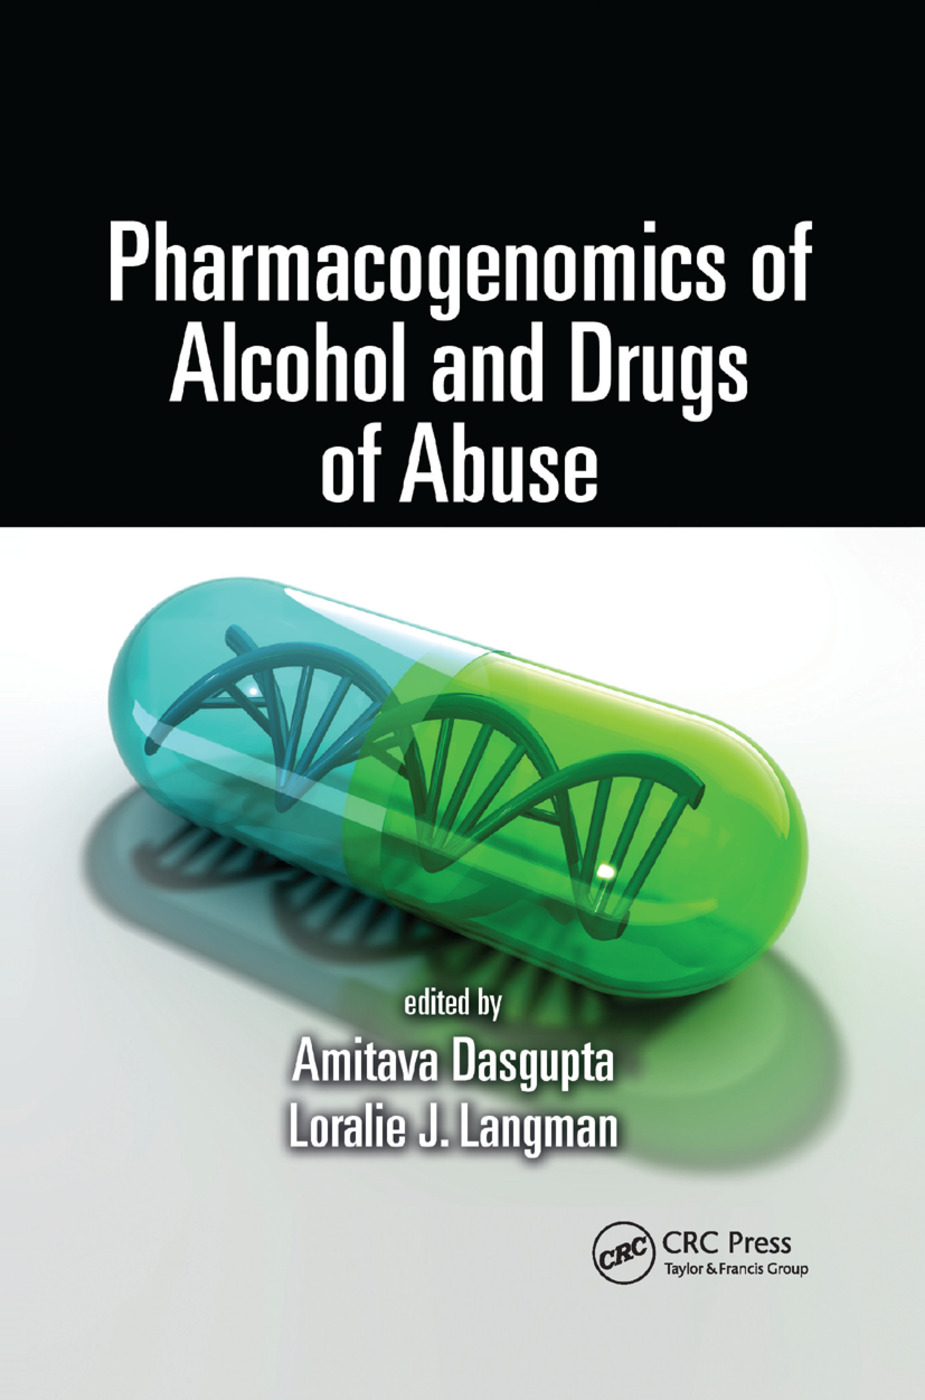 Pharmacogenomics of Alcohol and Drugs of Abuse